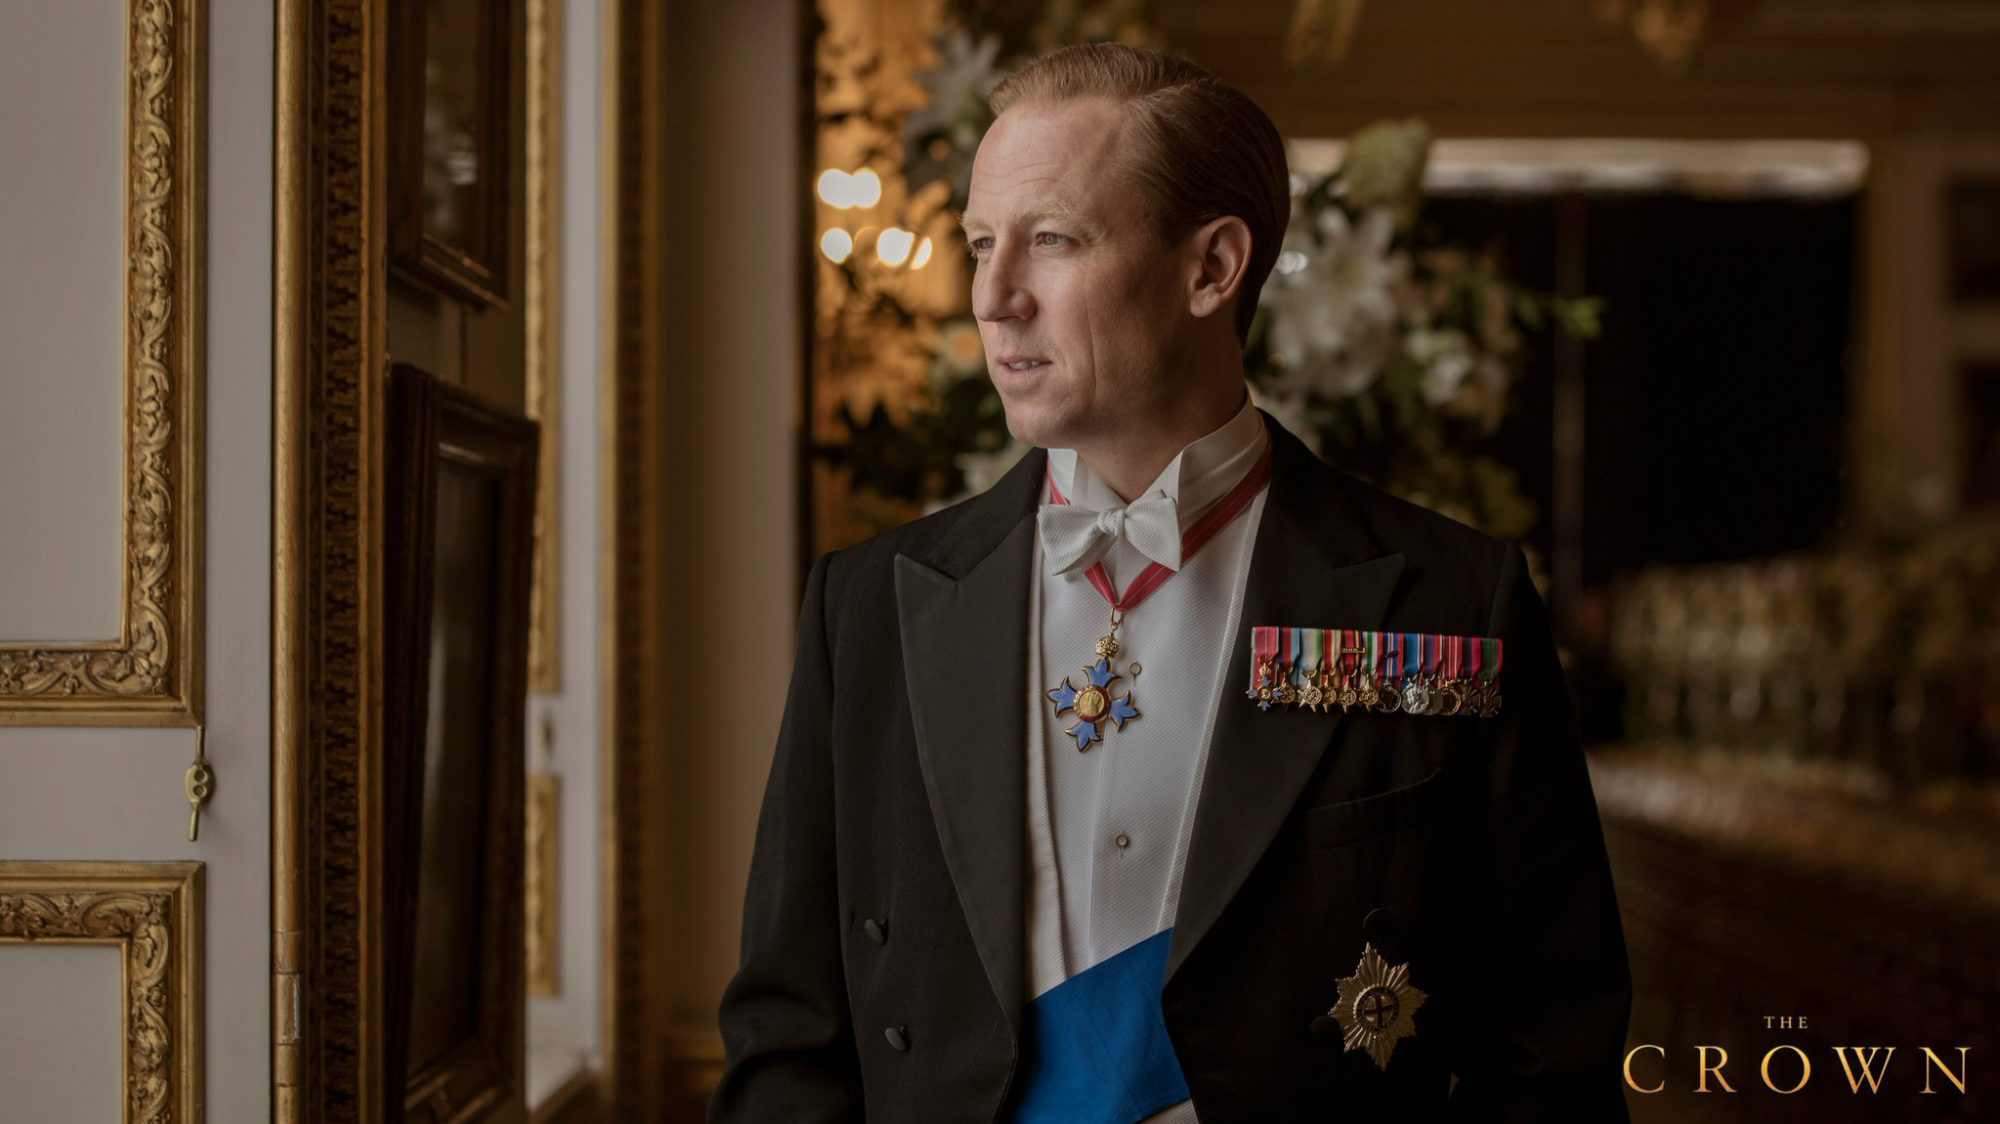 Tobias Menzies as Prince Philip (season 3)